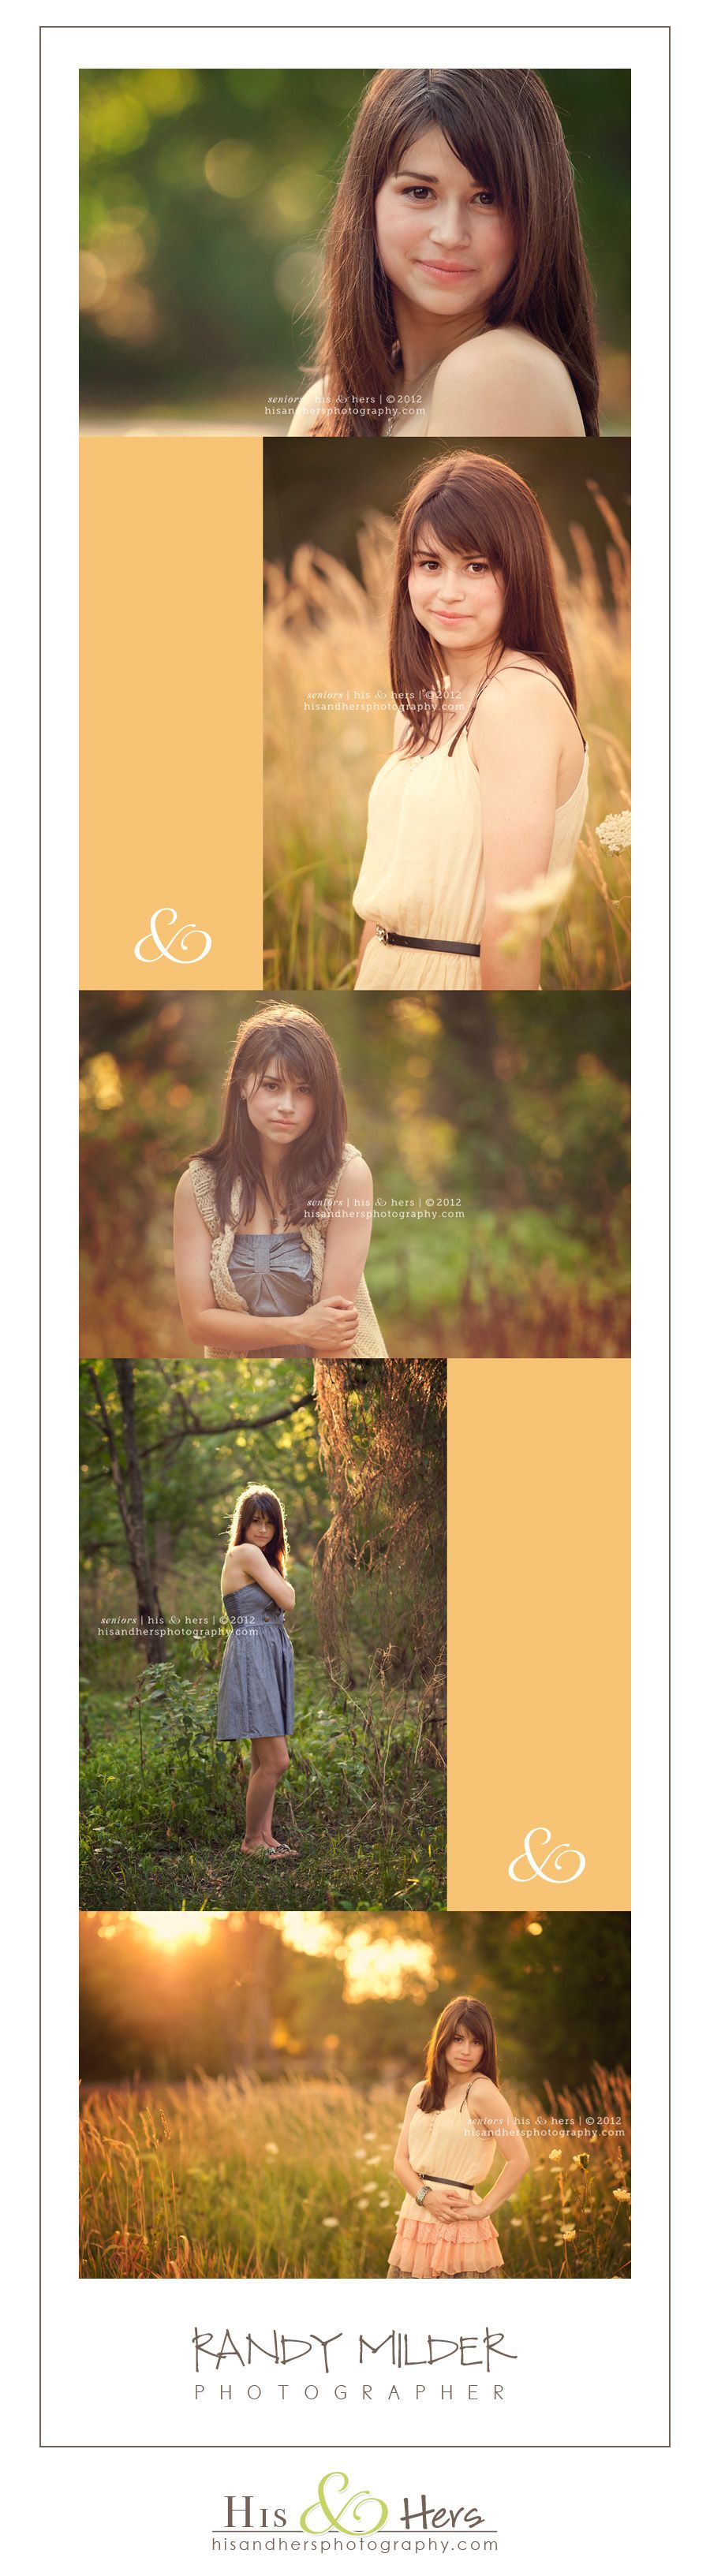 des moines iowa photographer senior portraits photographer senior pictures photographer randy milder his and hers